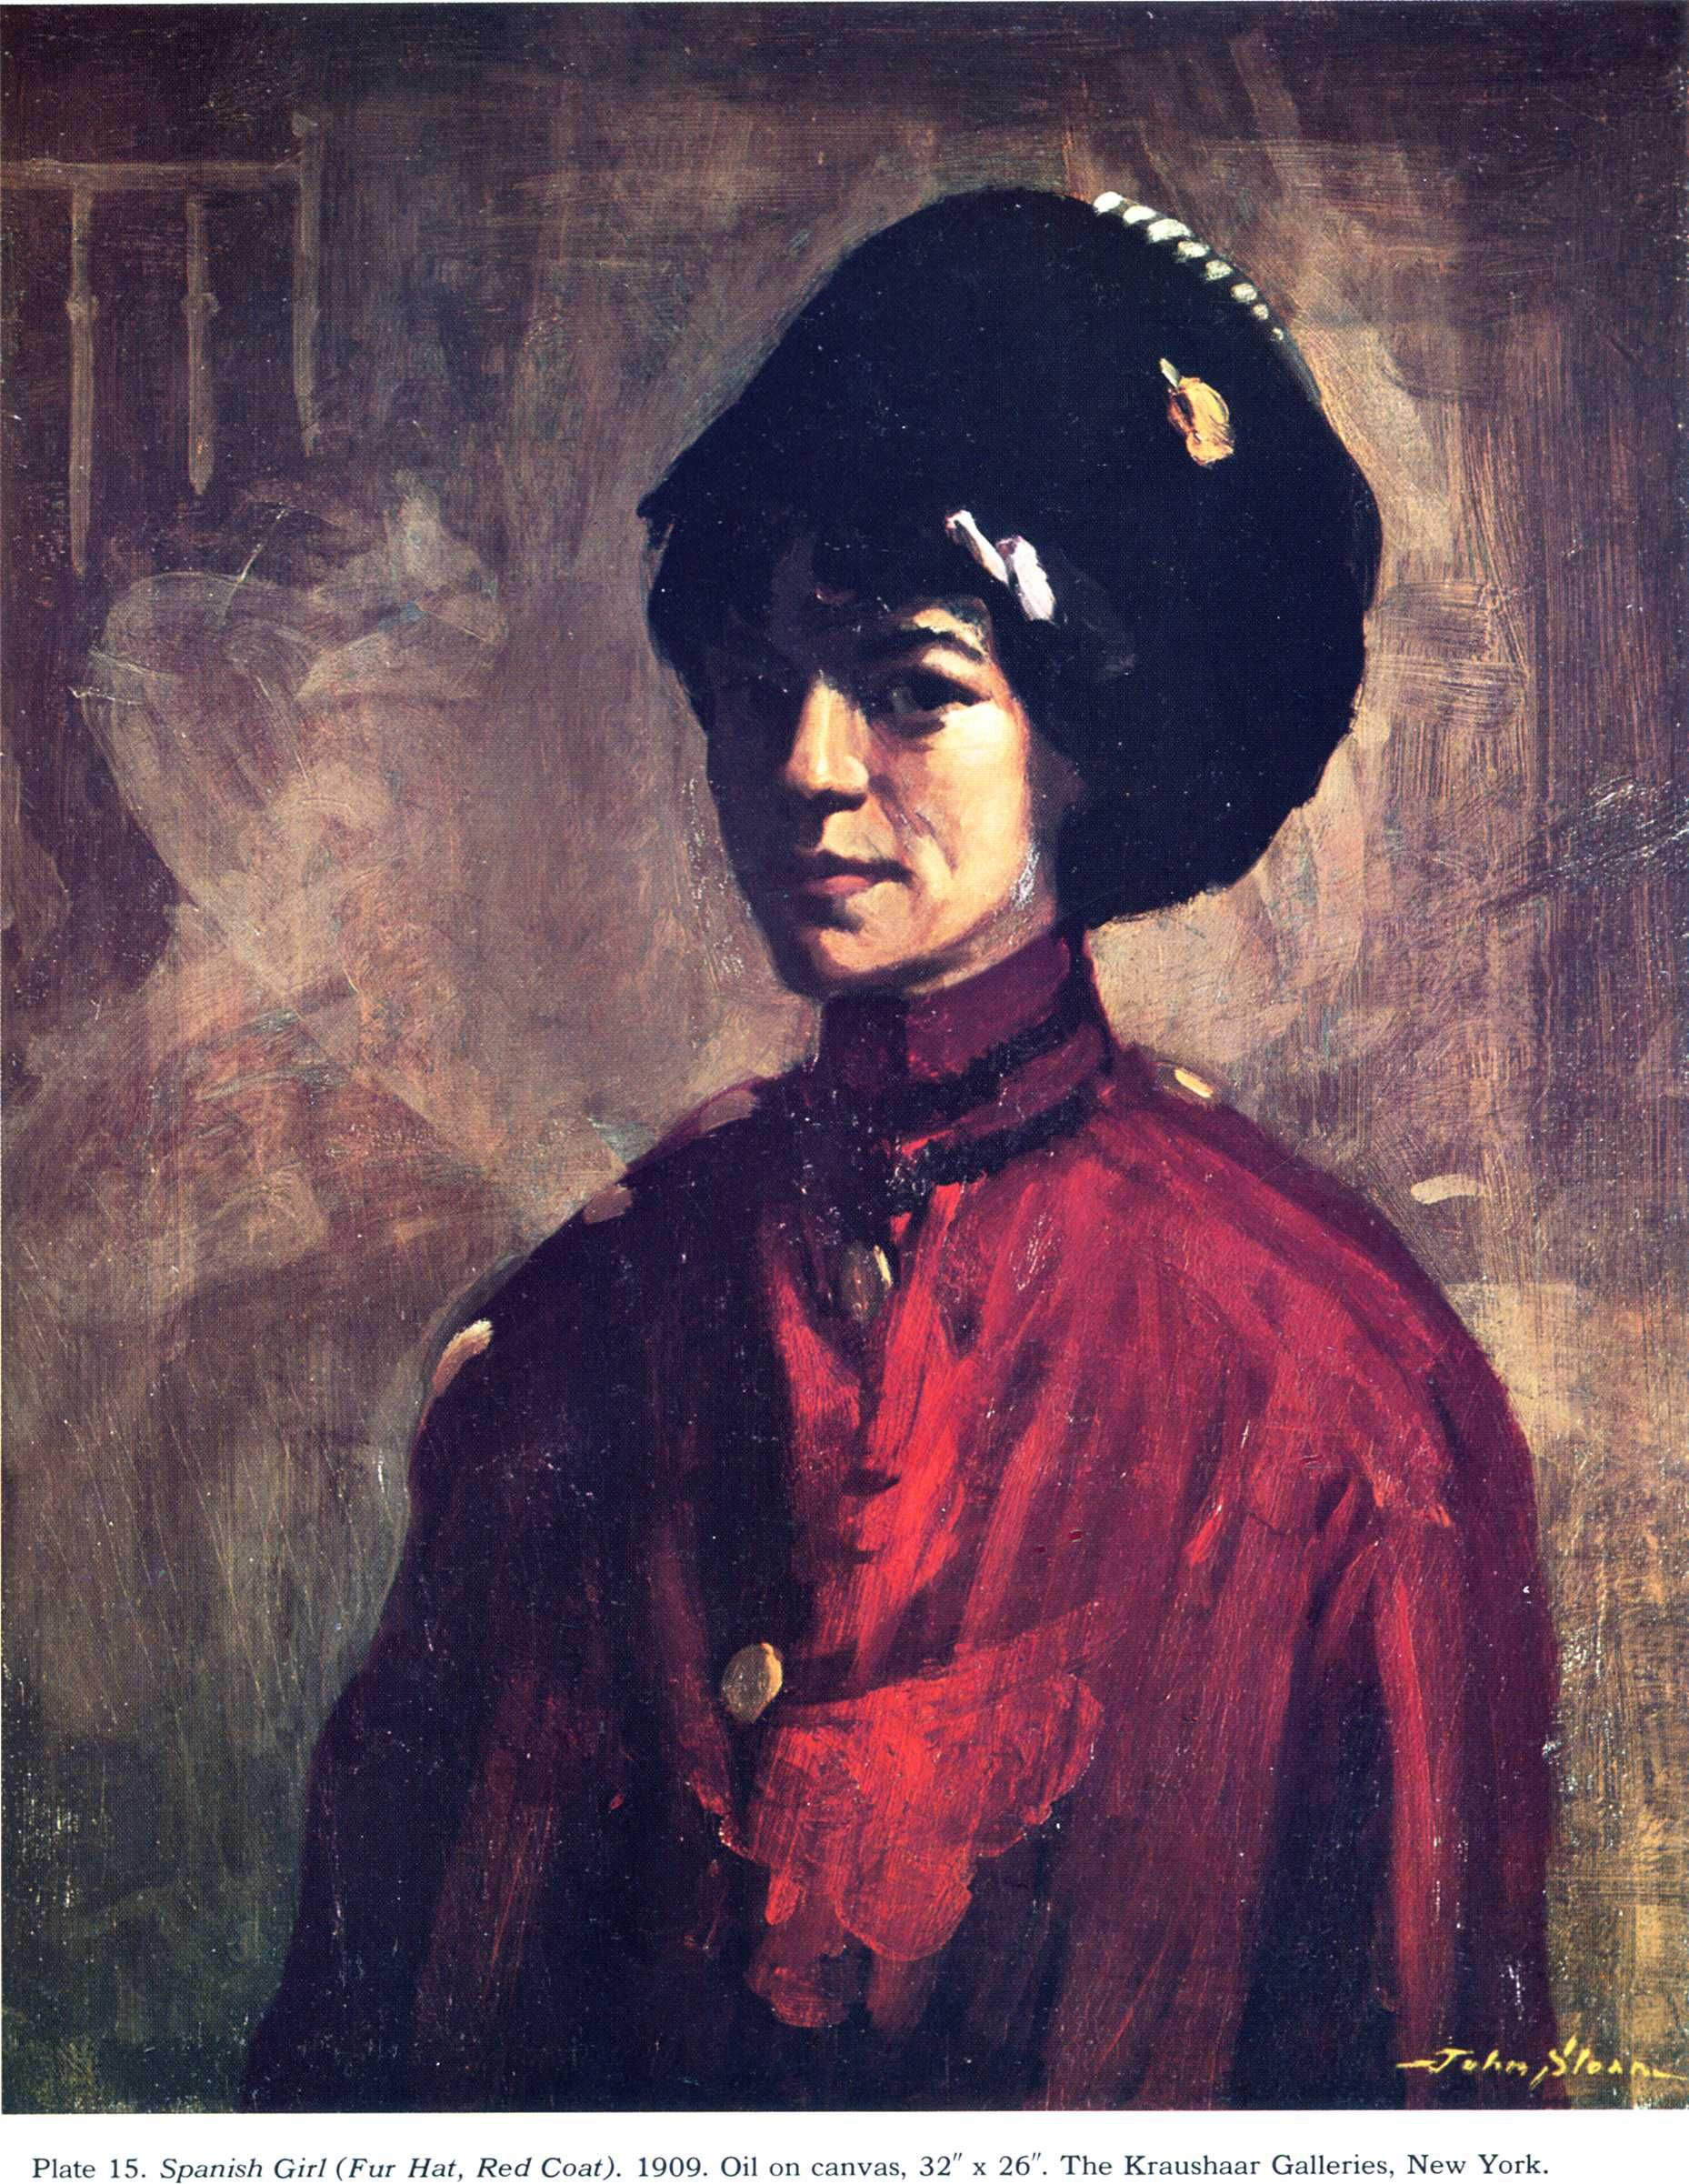 Spanish Girl (Fur Hat, Red Coat), 1909 John French Sloan